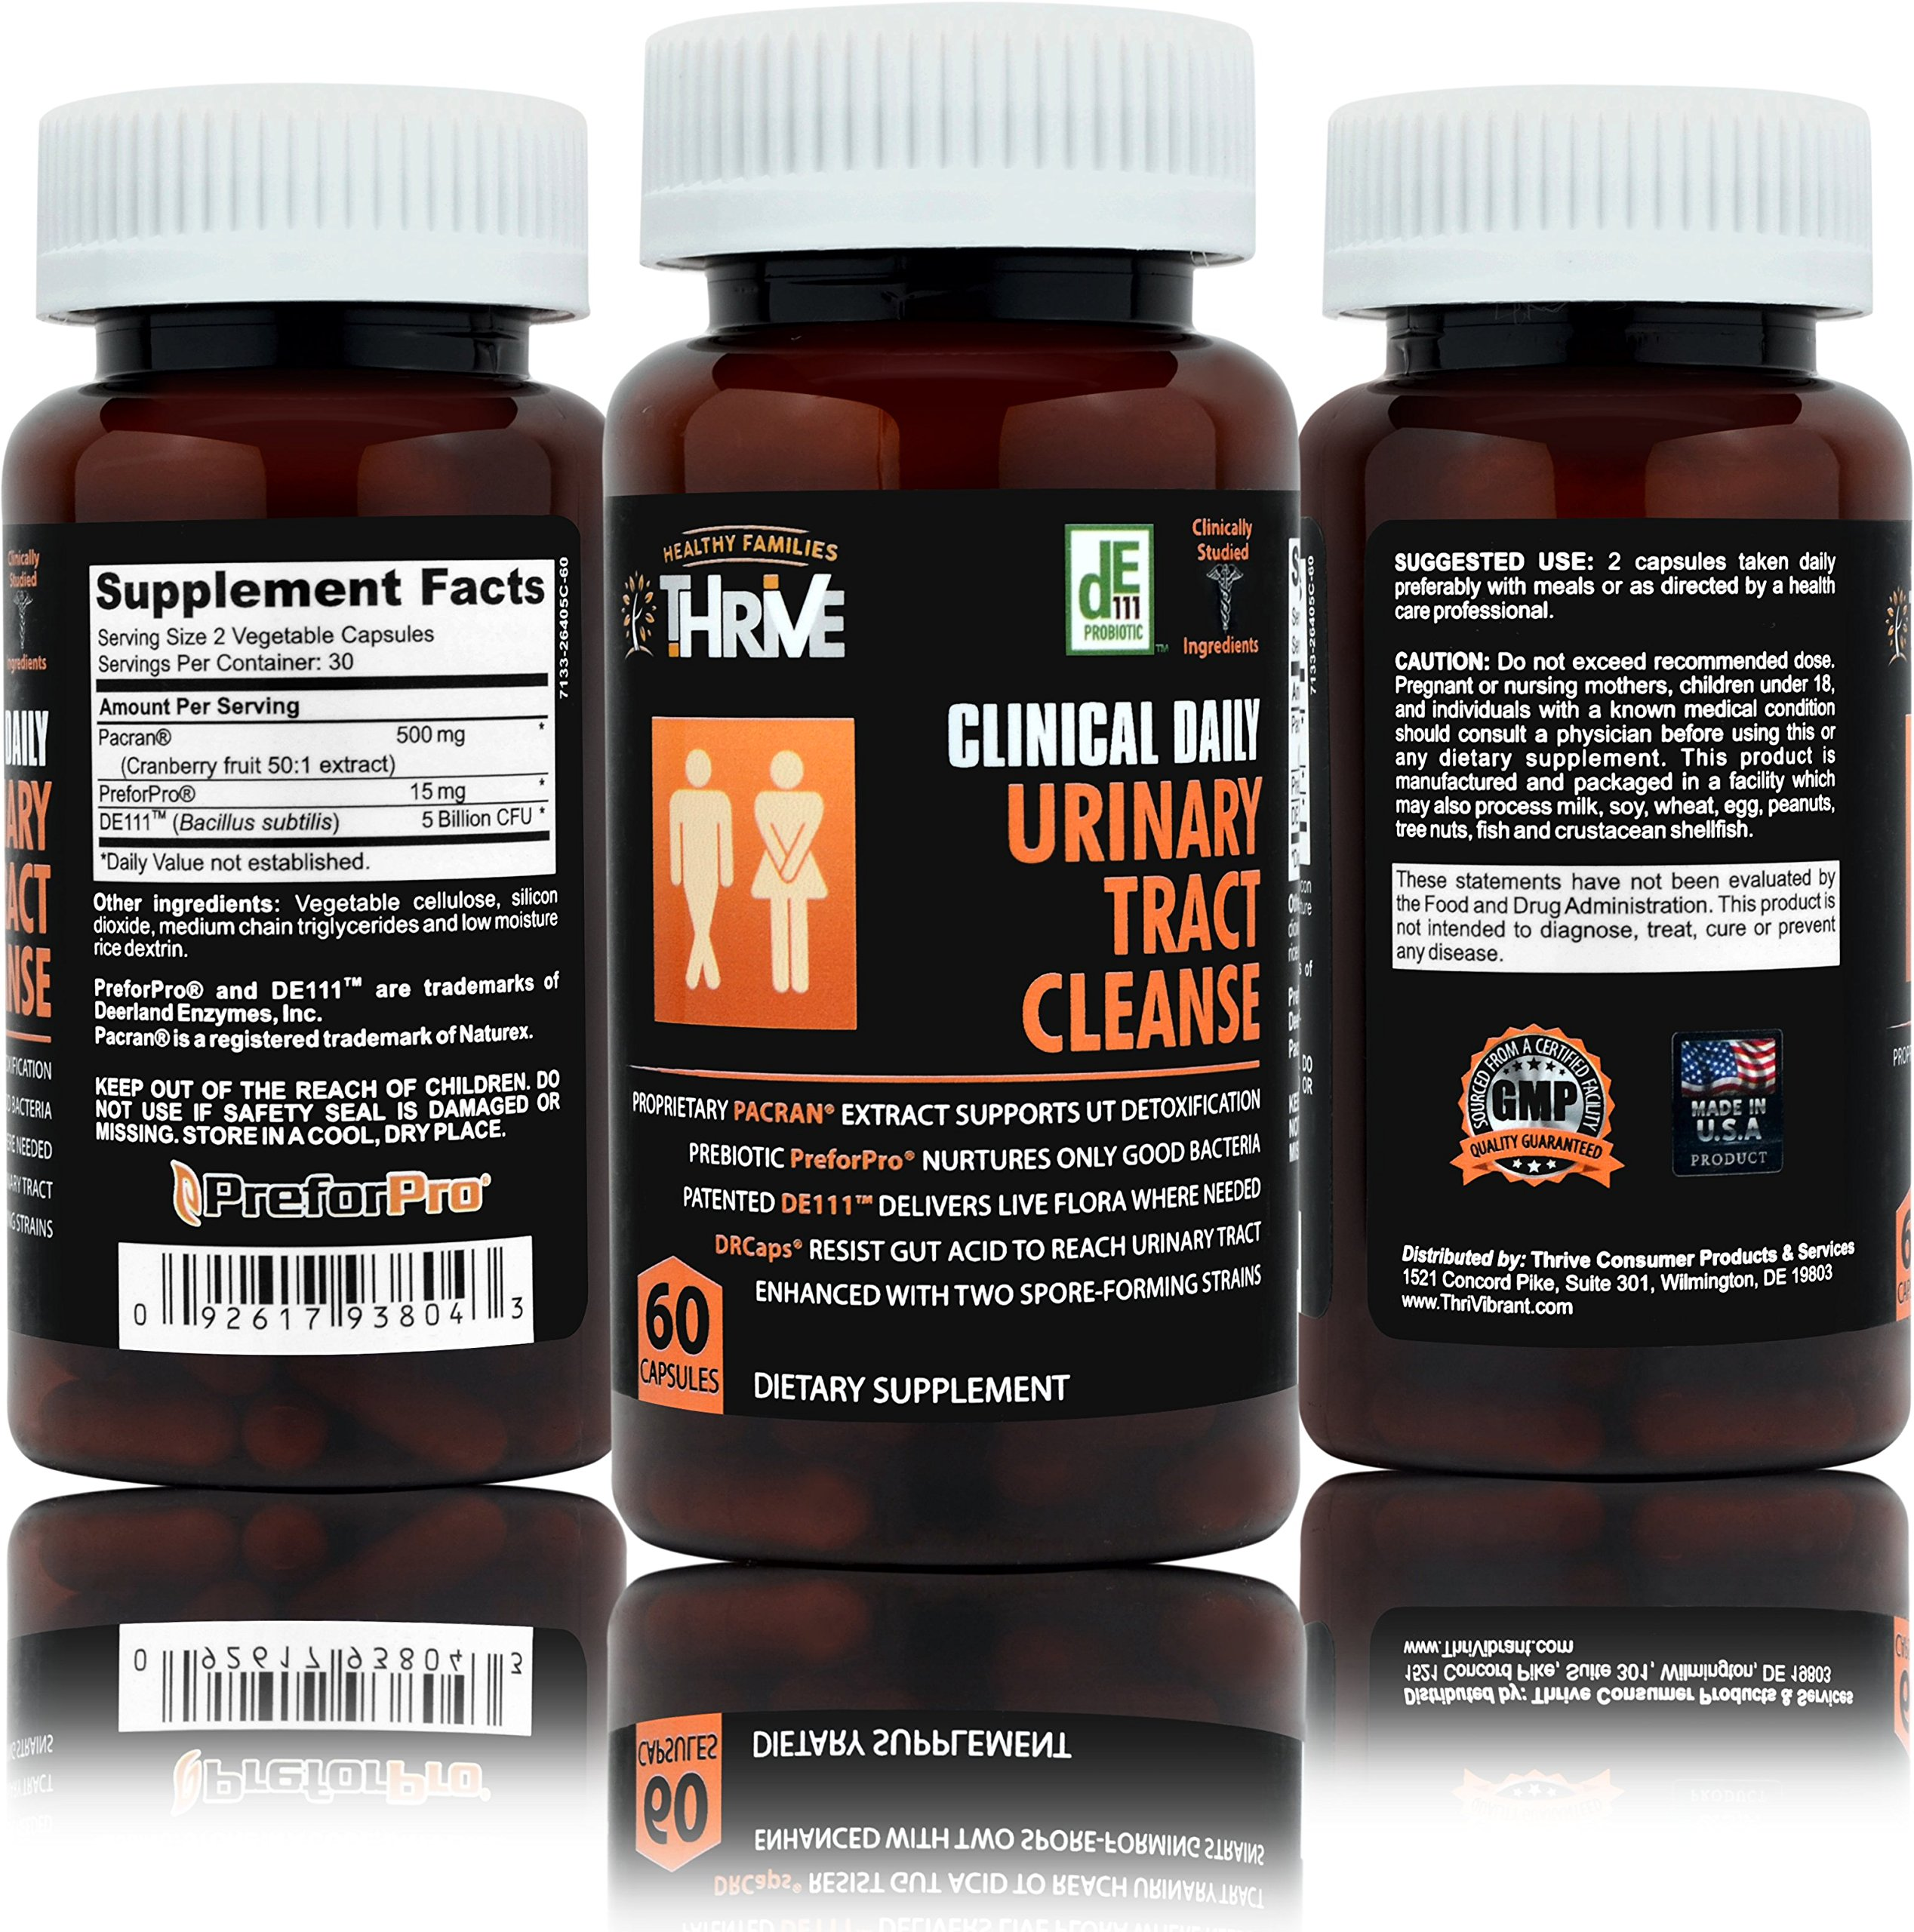 CLINICAL DAILY Urinary Tract Cleanse. Natural Cranberry (= 1 glass Juice) Probiotic supplement plus Prebiotics. Restore UTI, Bladder & Kidney Health, Immune Infection Support. 60 Vegetable Capsules.